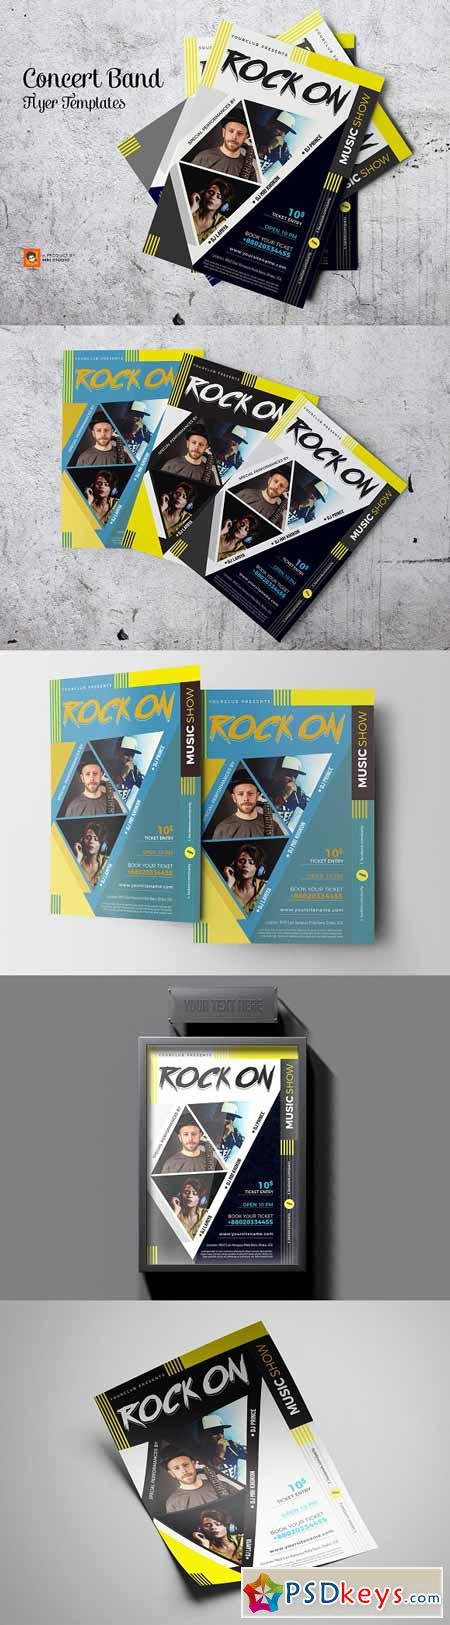 Concert Band Flyer Templates 3212663